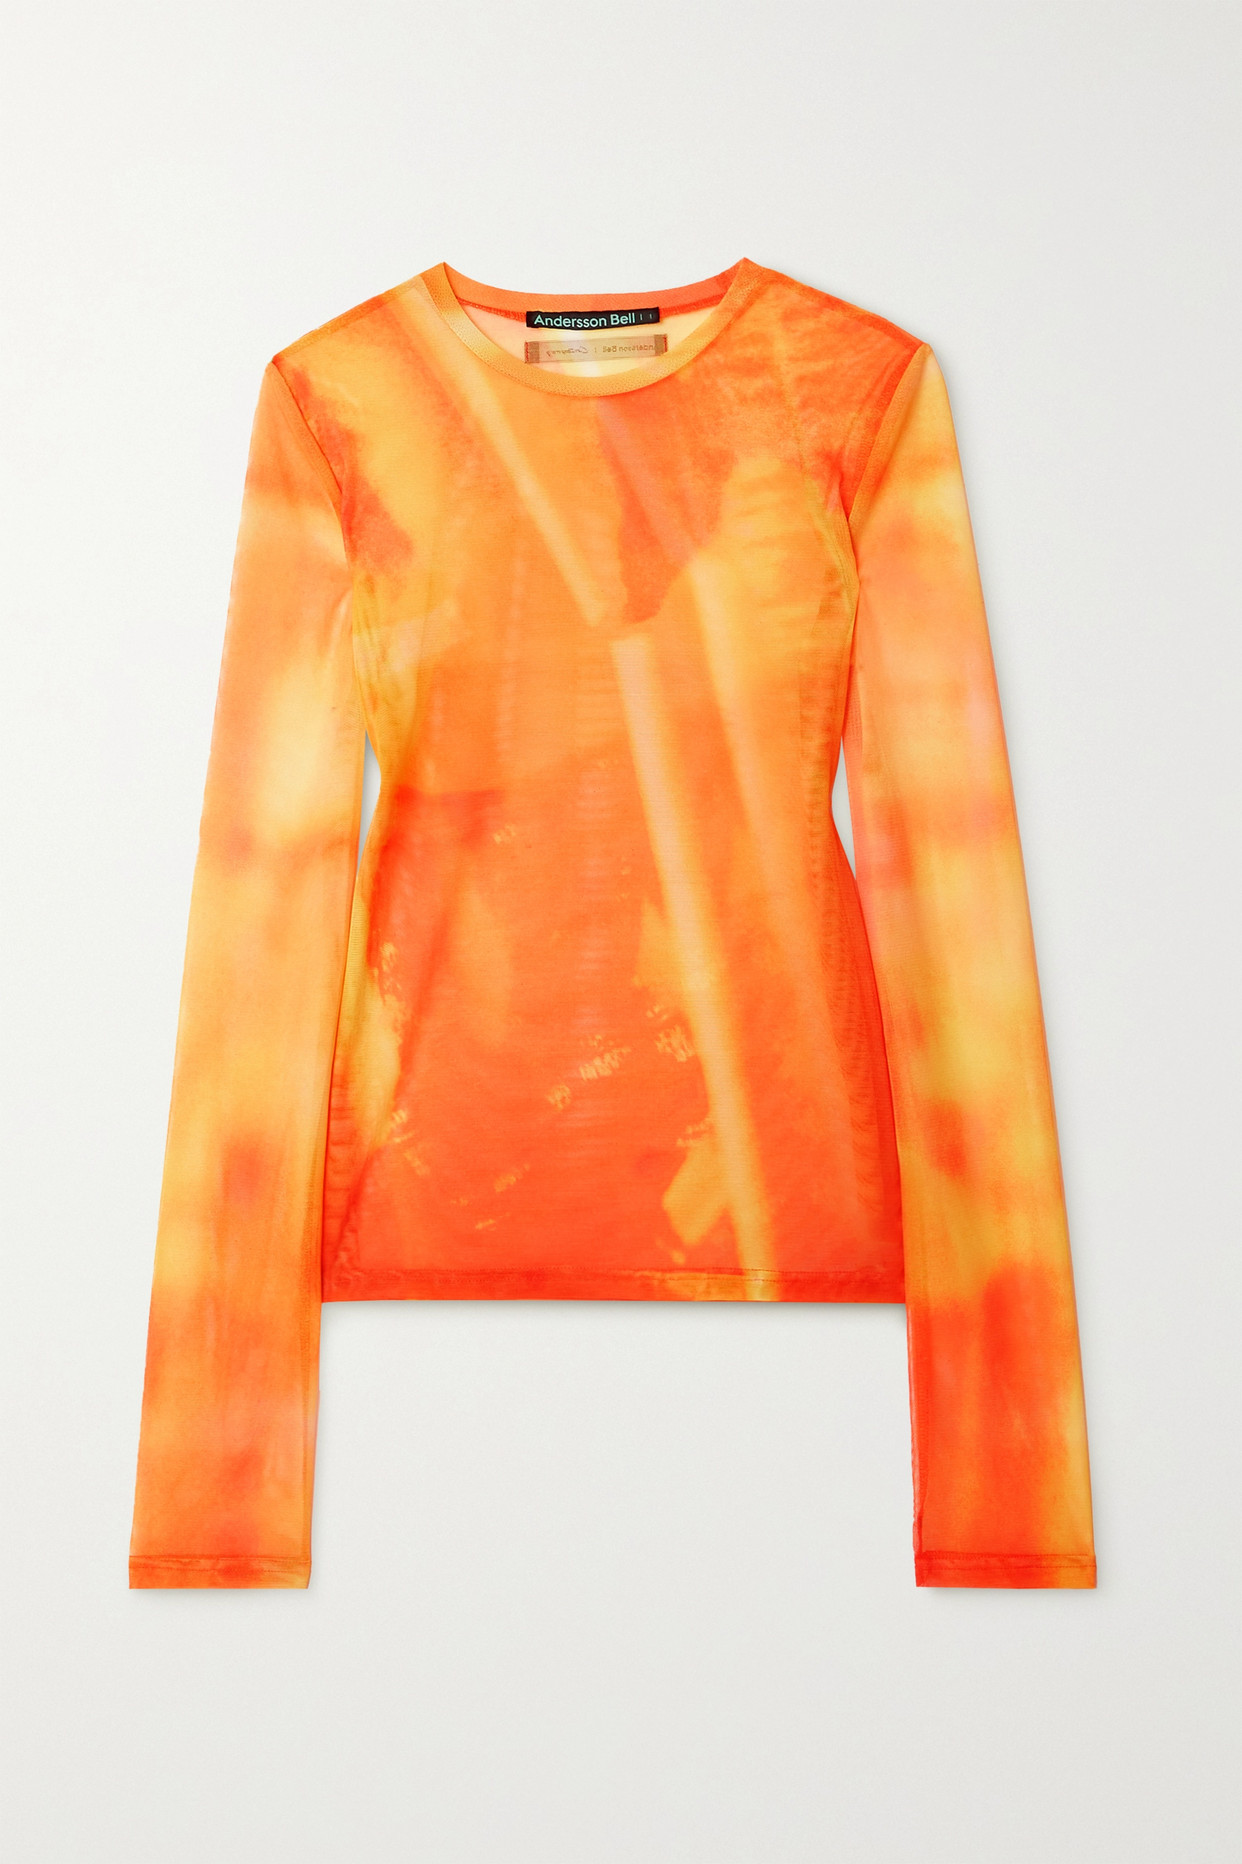 ANDERSSON BELL - Printed Stretch-mesh Top - Orange - x small